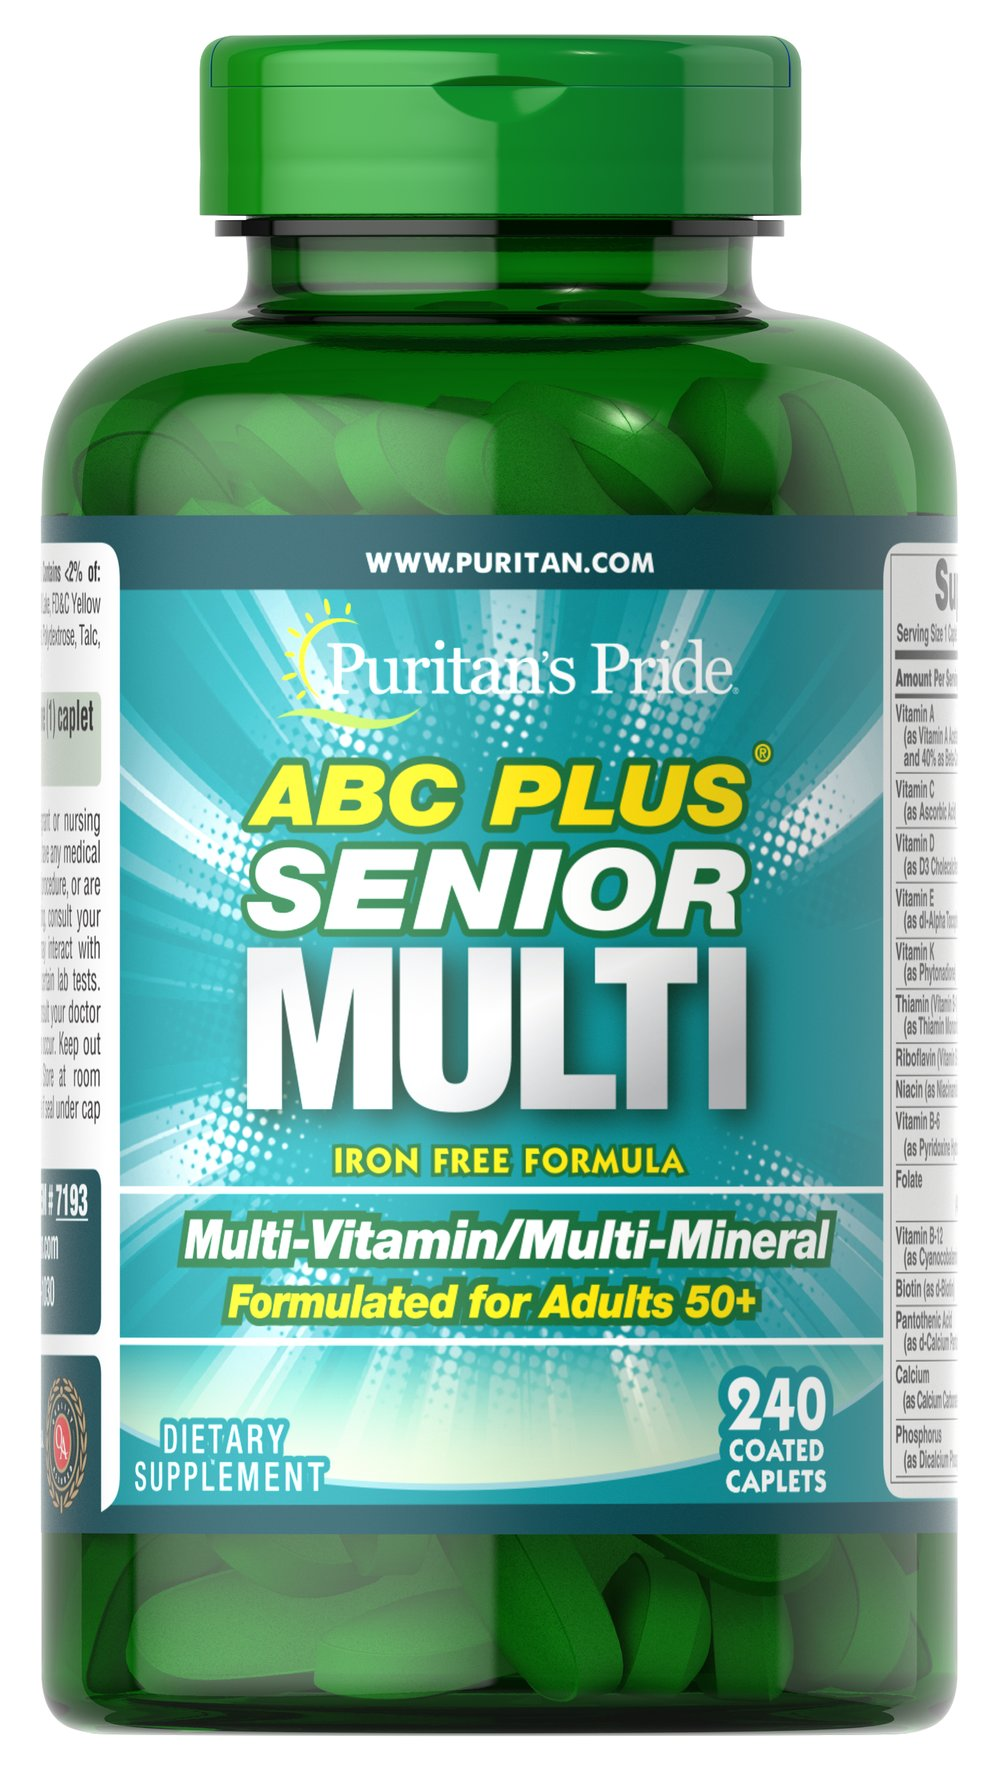 ABC Plus® Senior Multivitamin Multi-Mineral Formula <p>A special high-quality blend of vitamins and minerals formulated exclusively for adults 50 and over; delivers 100% or more daily values of Vitamins C, D, E, B-2, Niacin, Folic Acid, B-12, Zinc and more. This iron-free, heart-healthy supplement also includes Lutein and Lycopene.** Compare and save!</p> 240 Caplets  $27.99